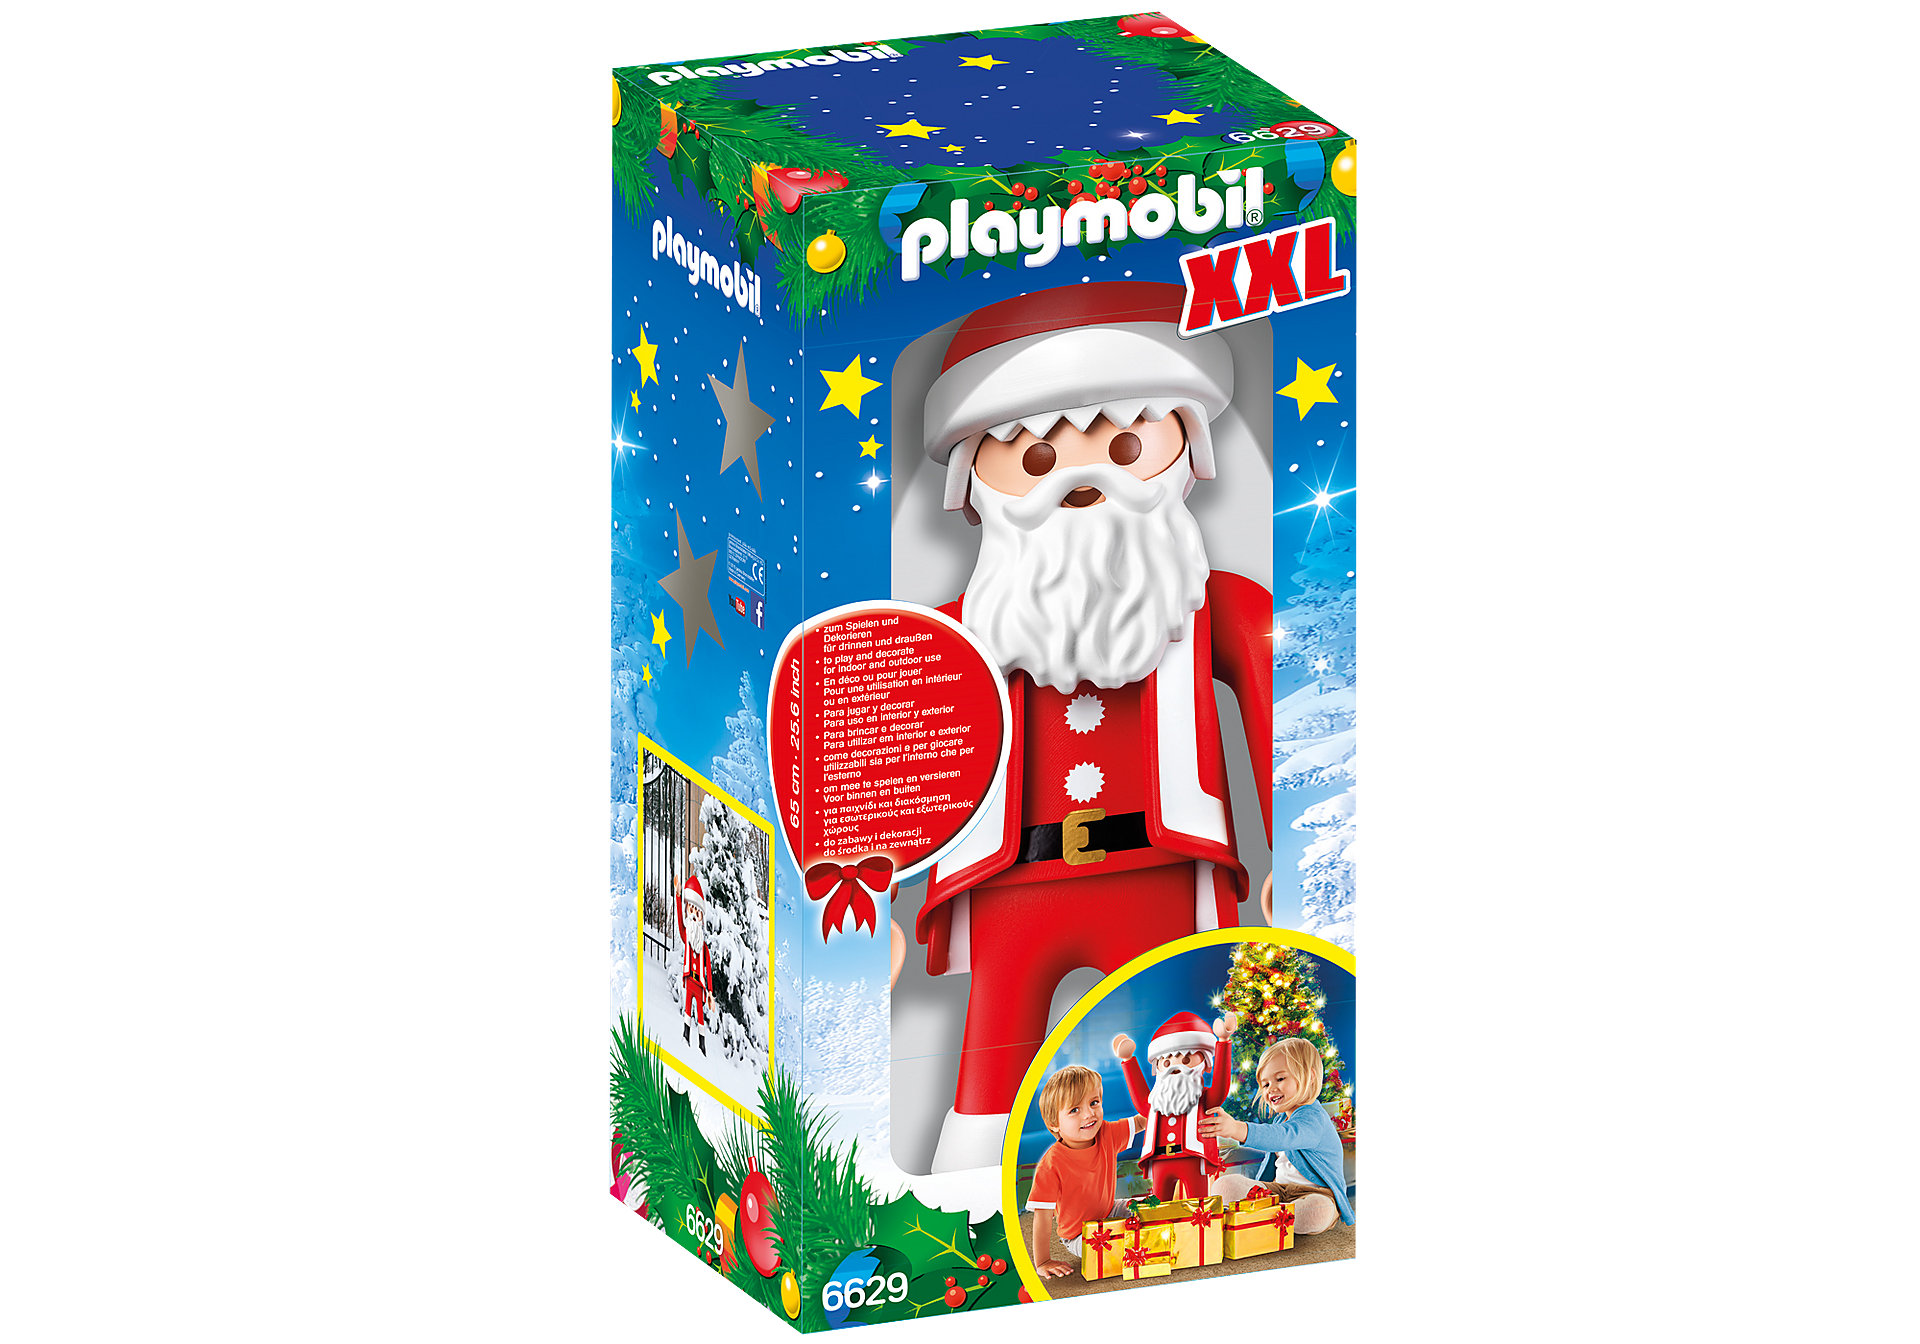 6629 PLAYMOBIL Babbo Natale giocattolo zoom image2